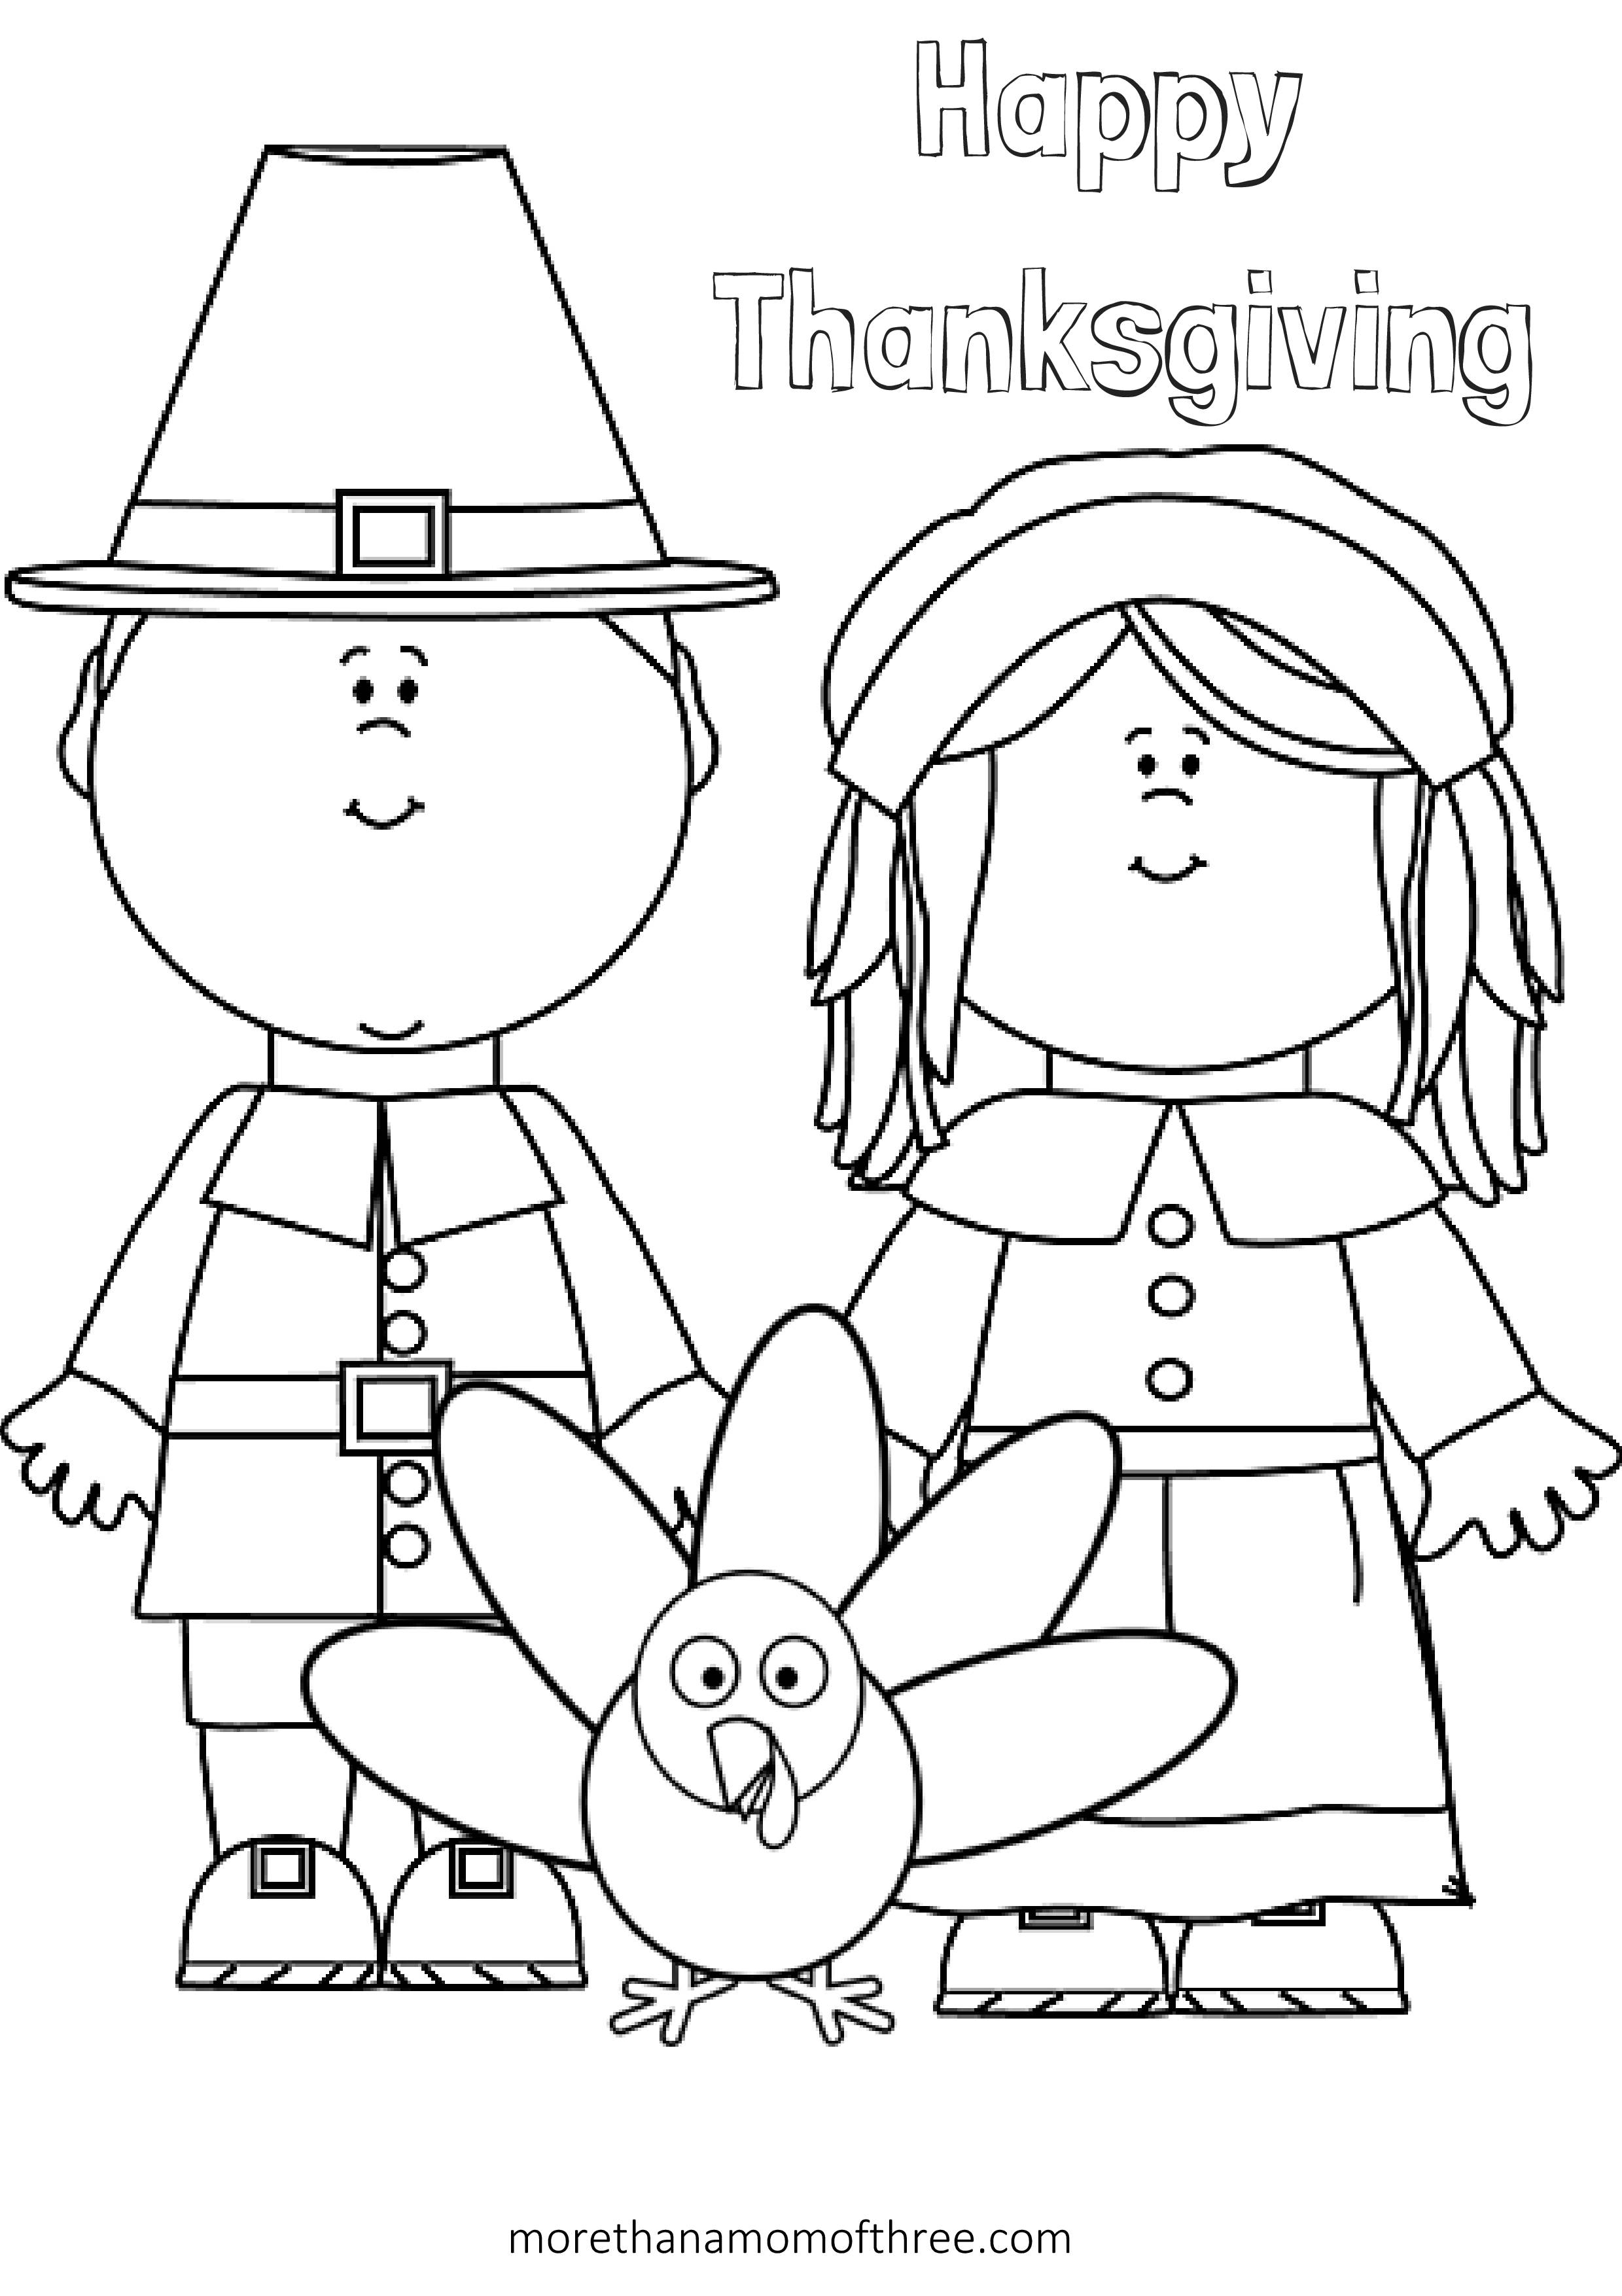 turkey color pages thanksgiving coloring pages for adults coloring home color turkey pages